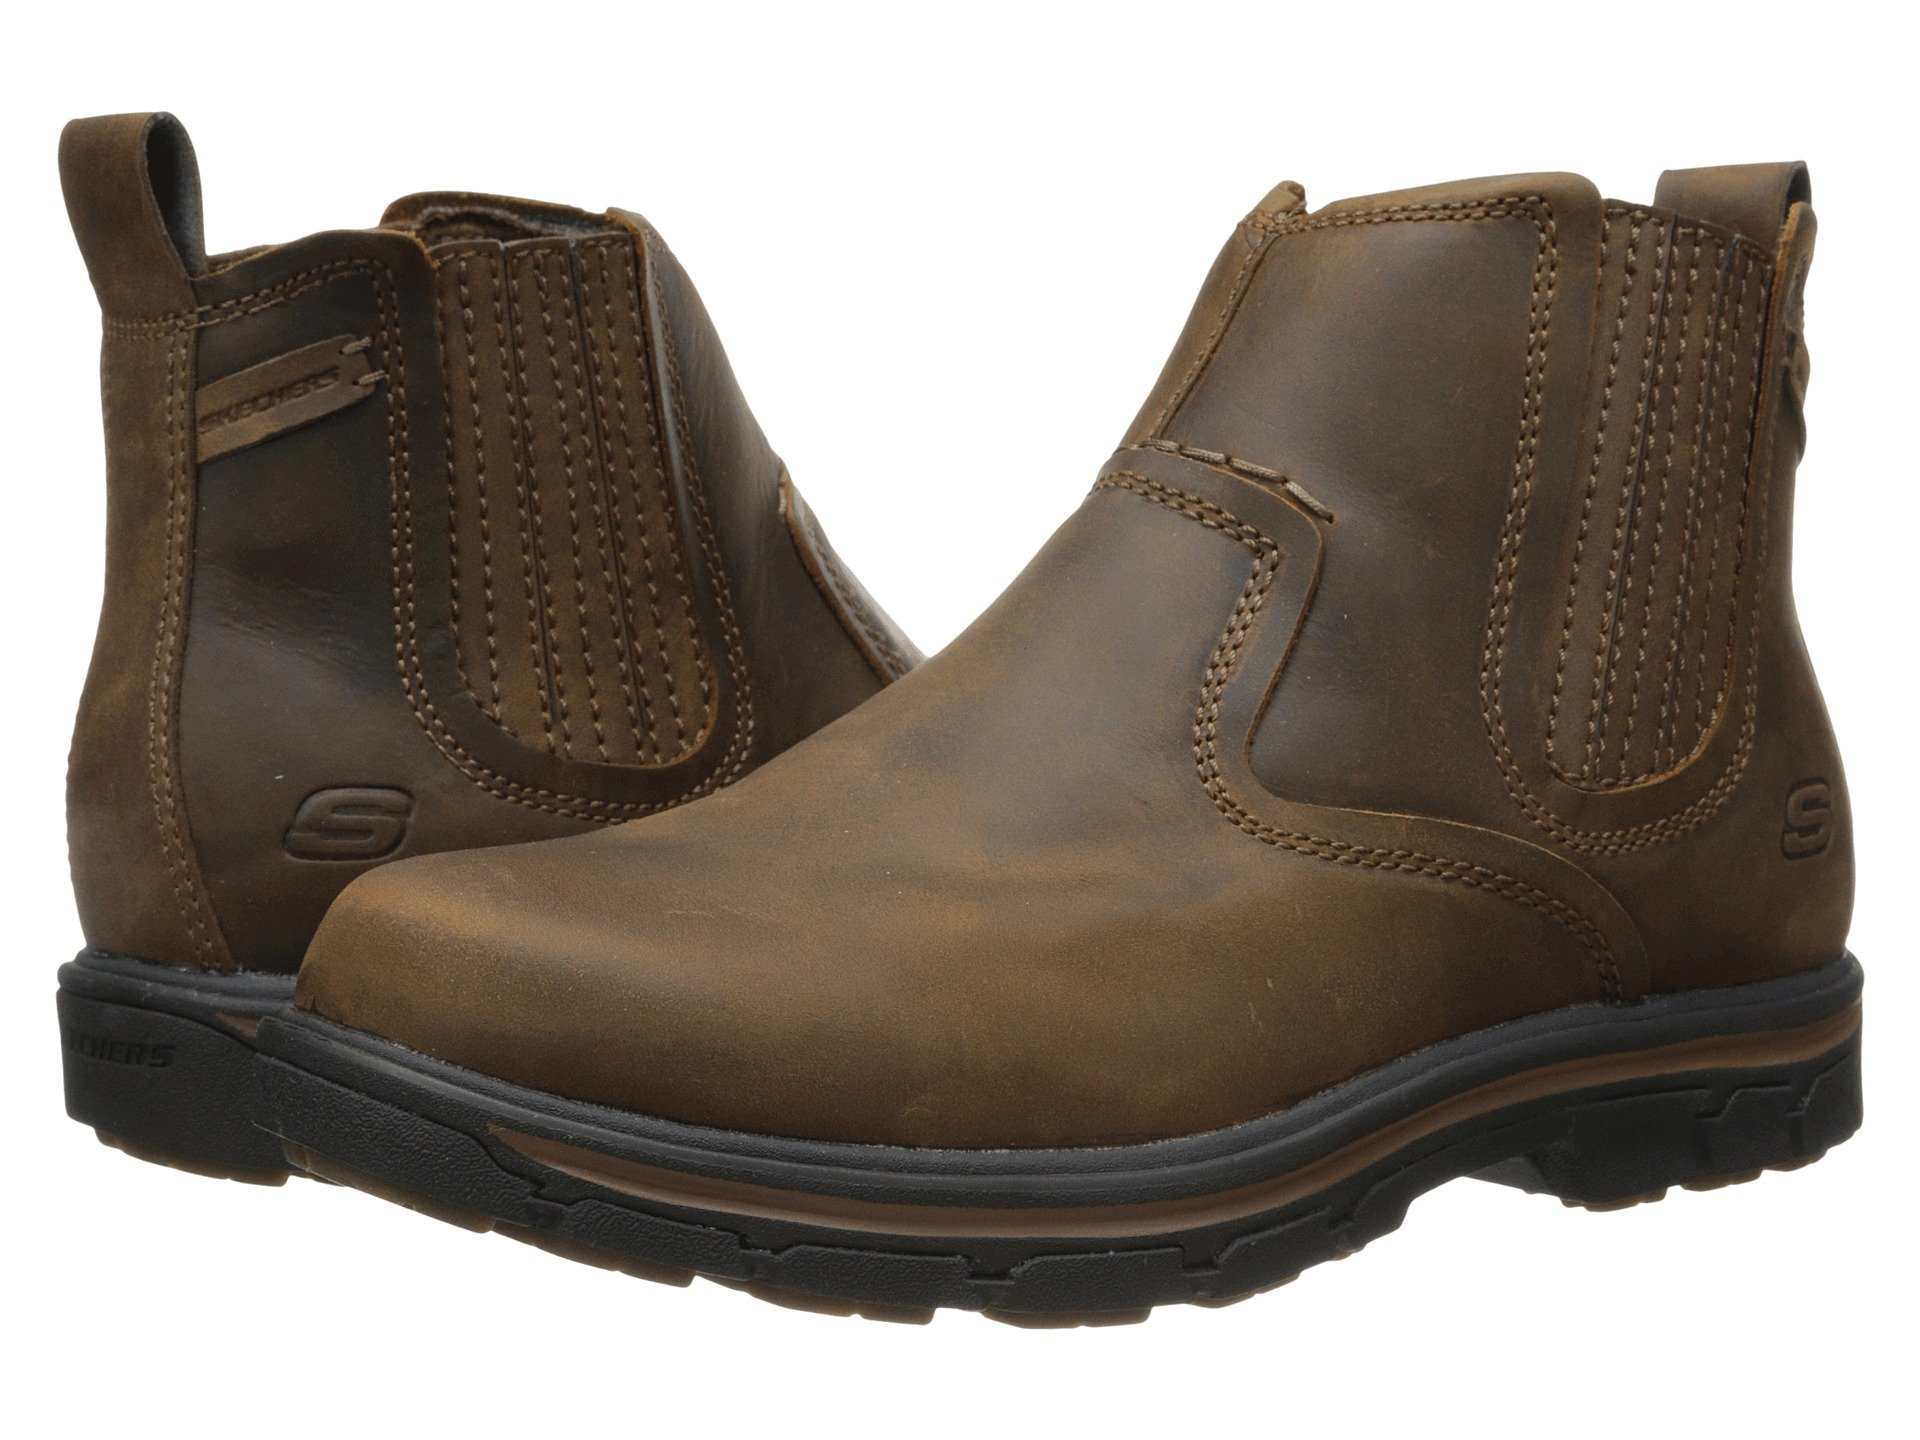 dorton single men Shop skechers men's dorton boots and other name brand casual shoes at the exchange you've earned the right to shop tax free and enjoy free shipping.